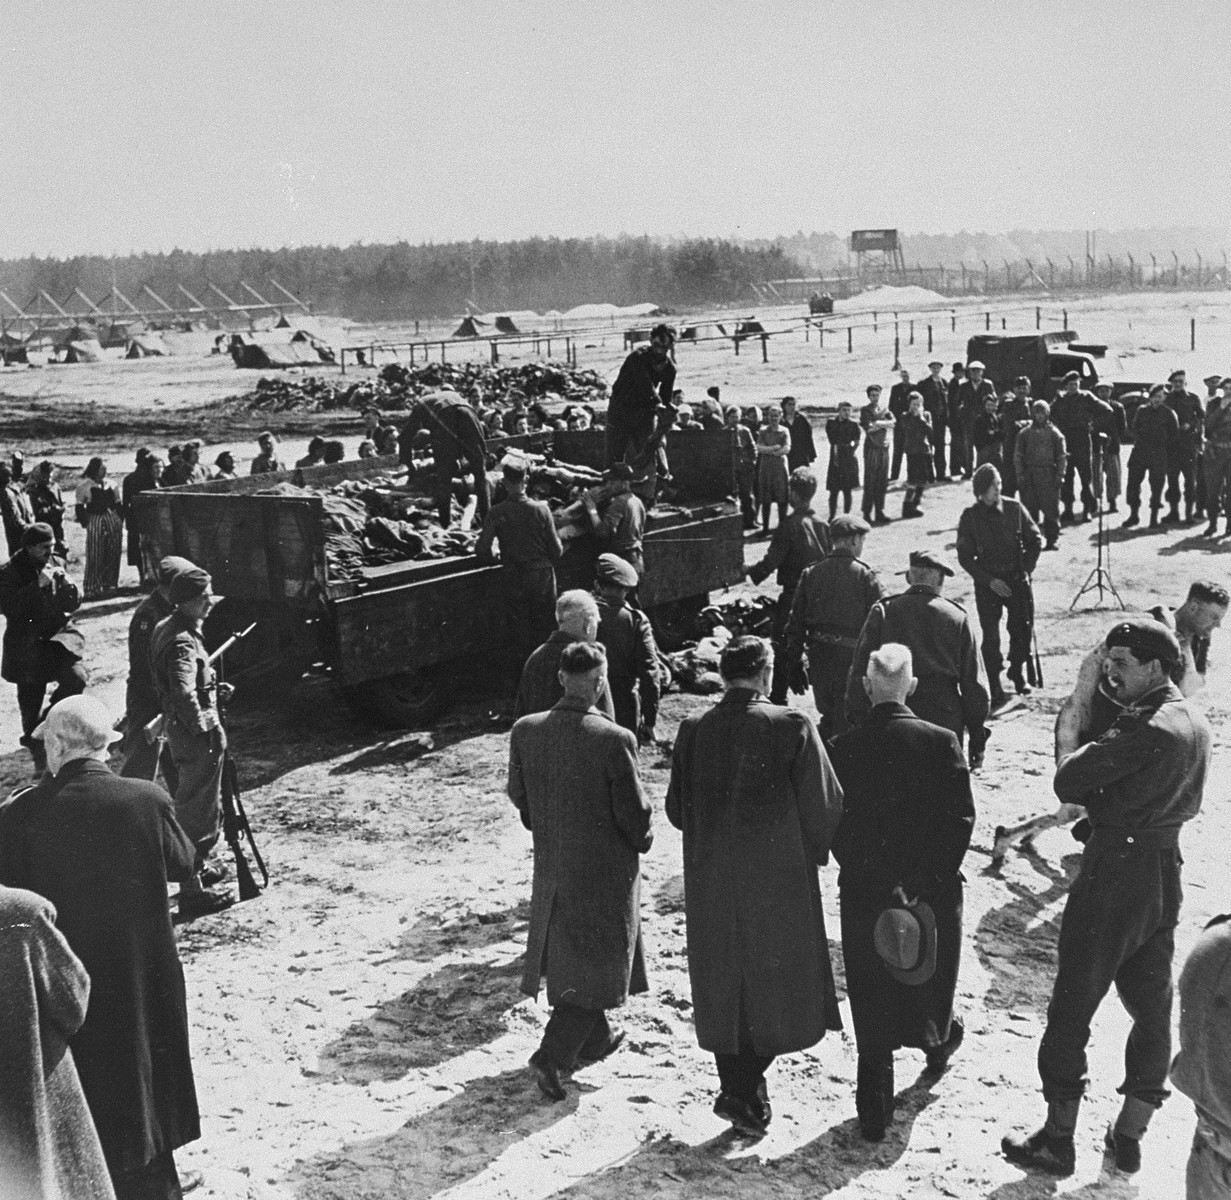 Burgermeisters from towns close to Bergen-Belsen are confronted with Nazi crimes by British officers.